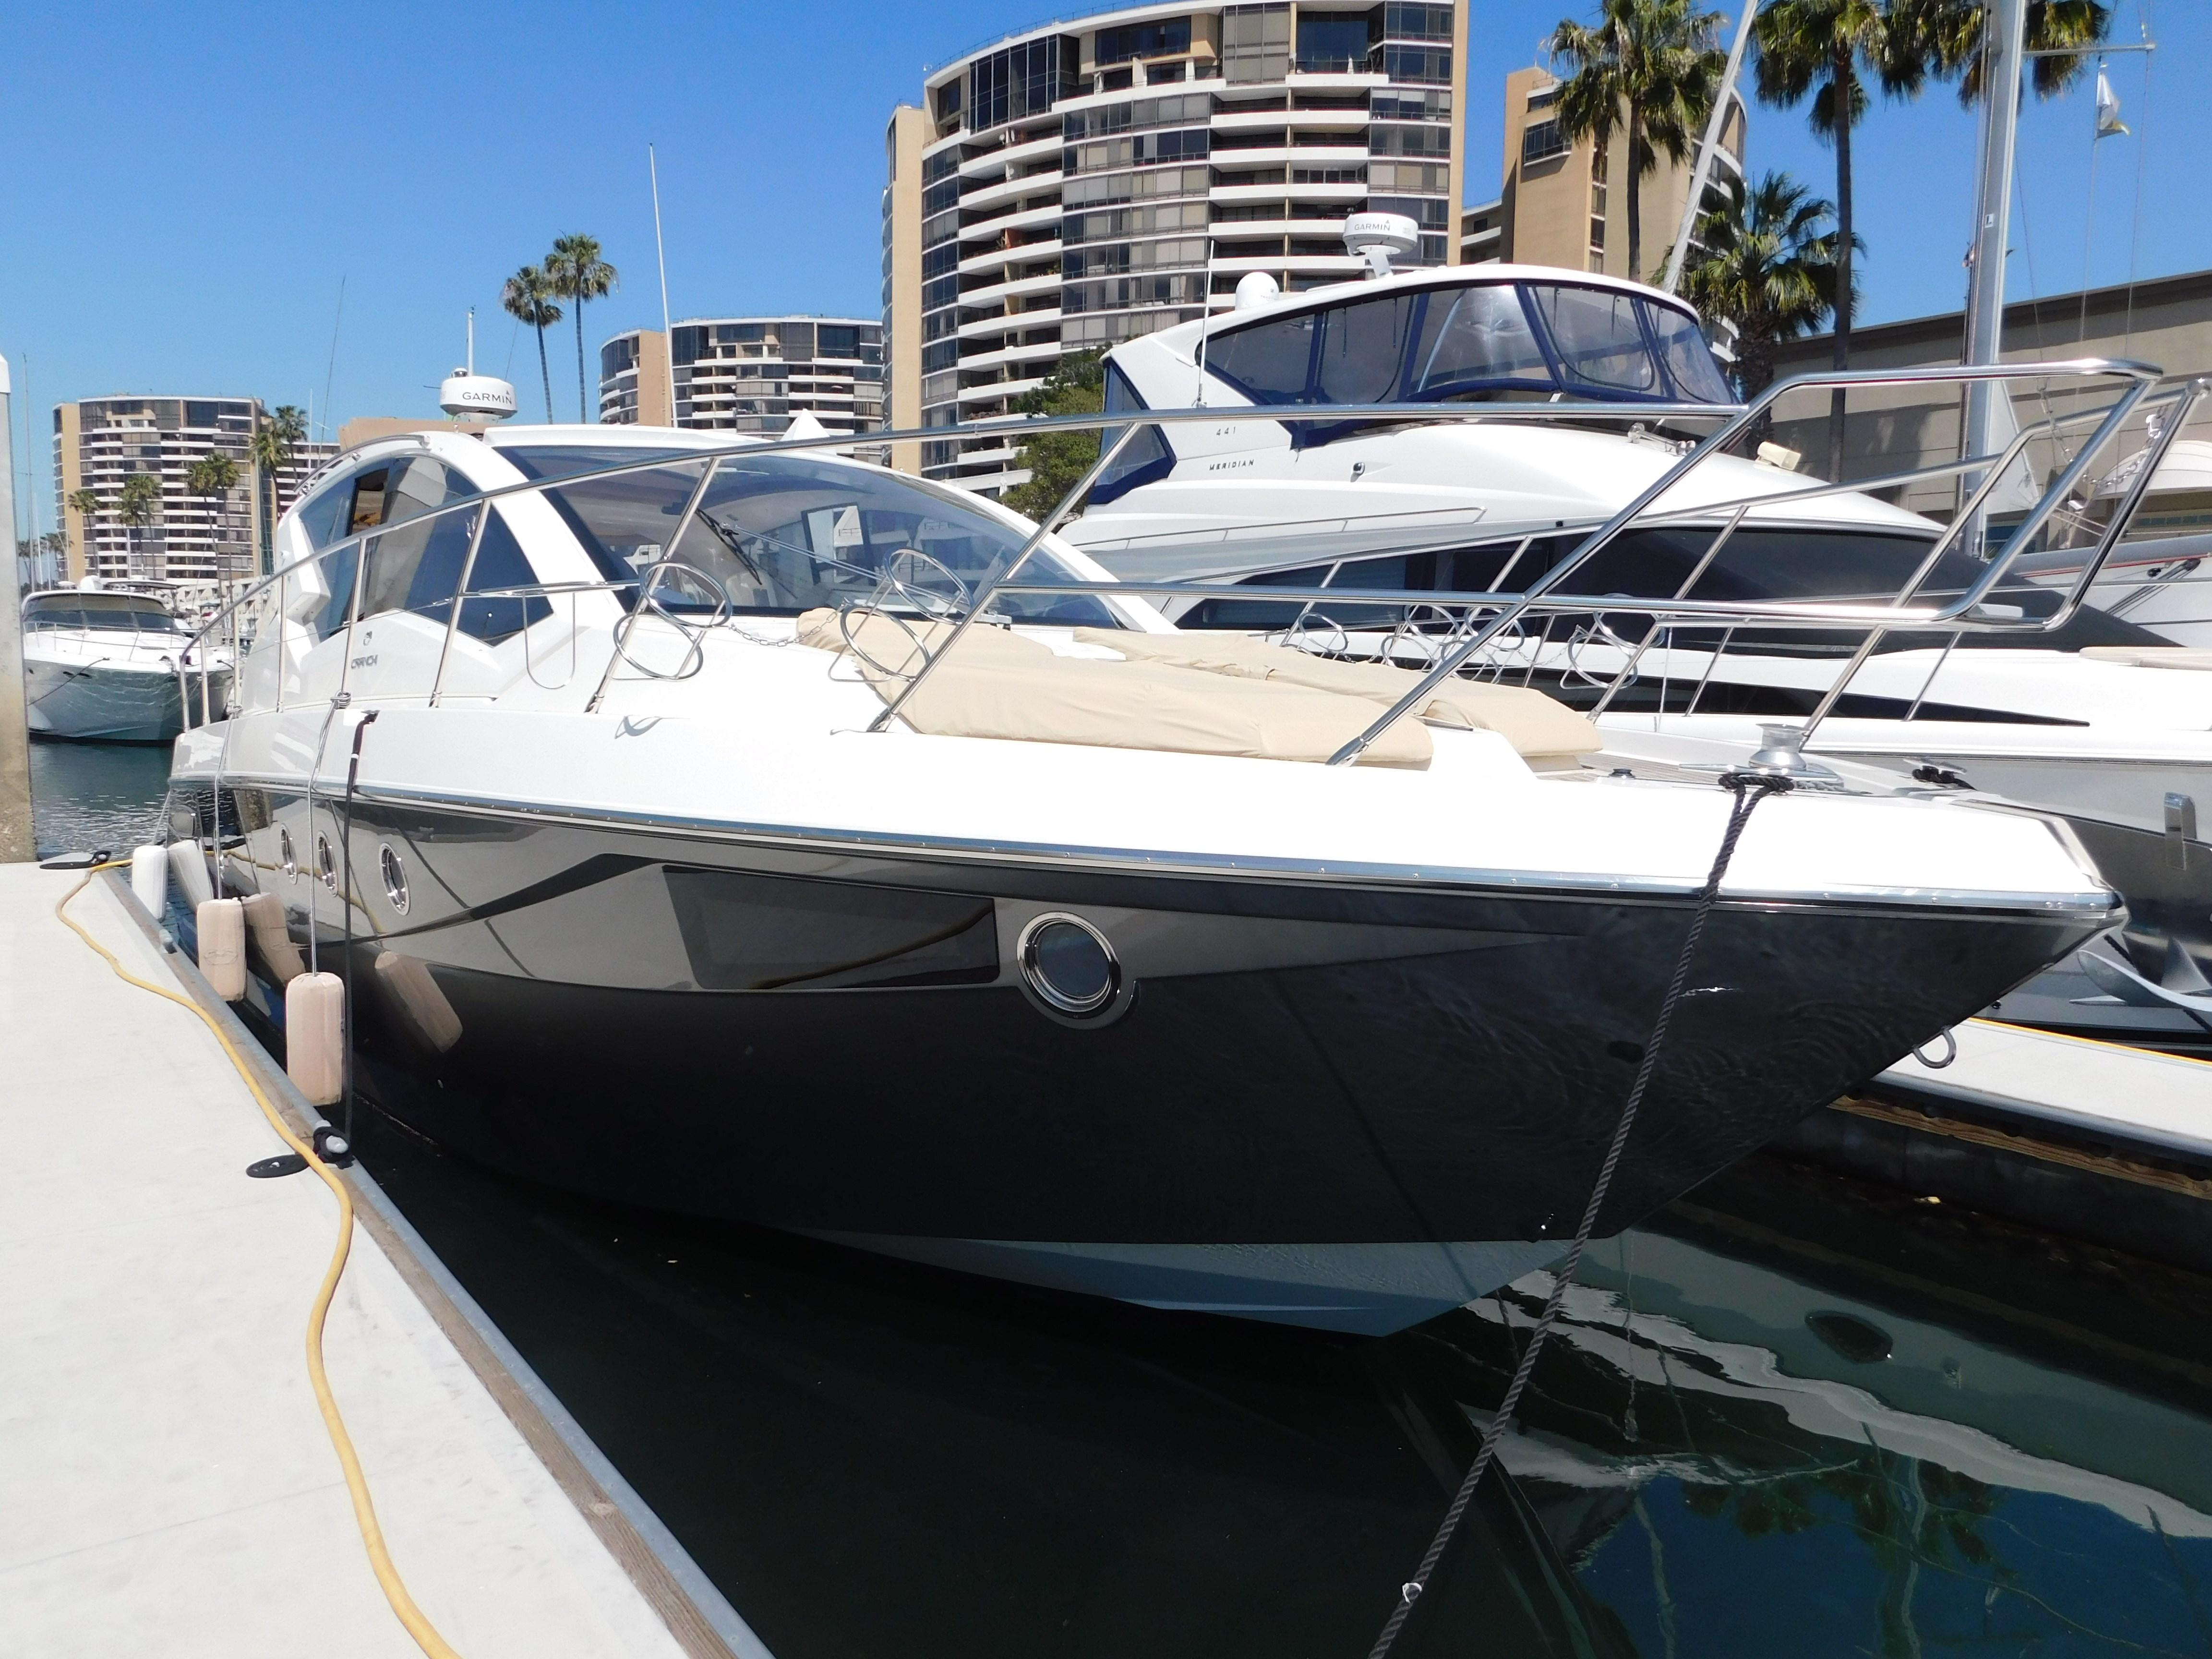 2015 Cranchi M44 HT Power Boat For Sale - www.yachtworld.com